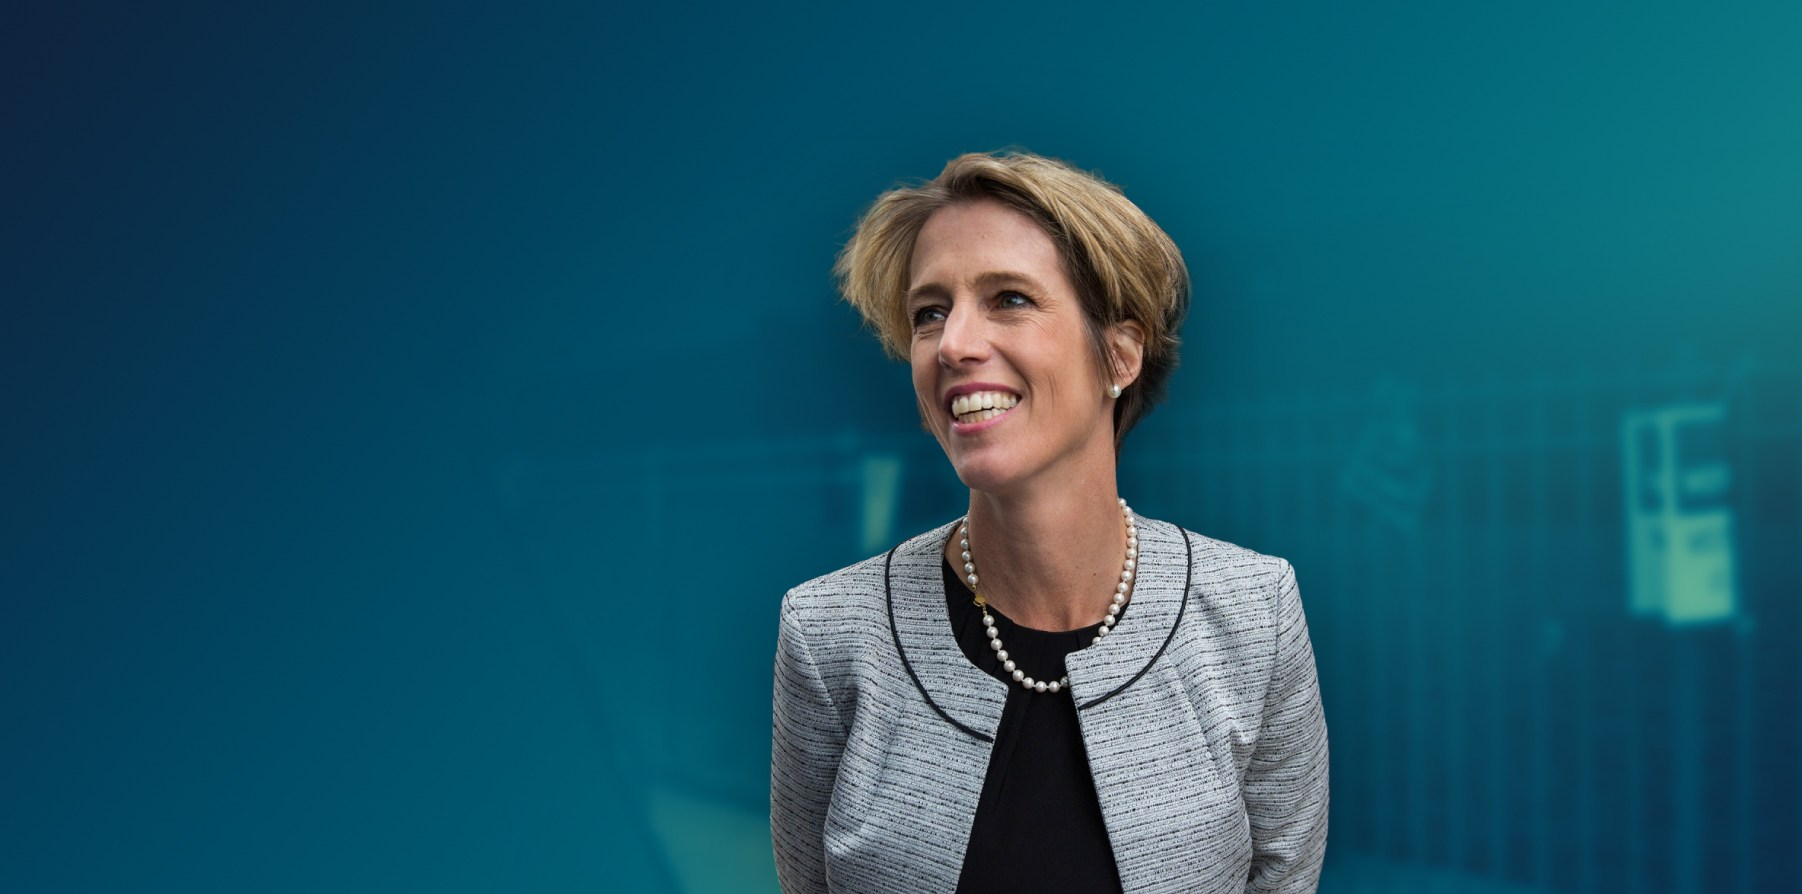 Zephyr Teachout wins the New York Times's endorsement for